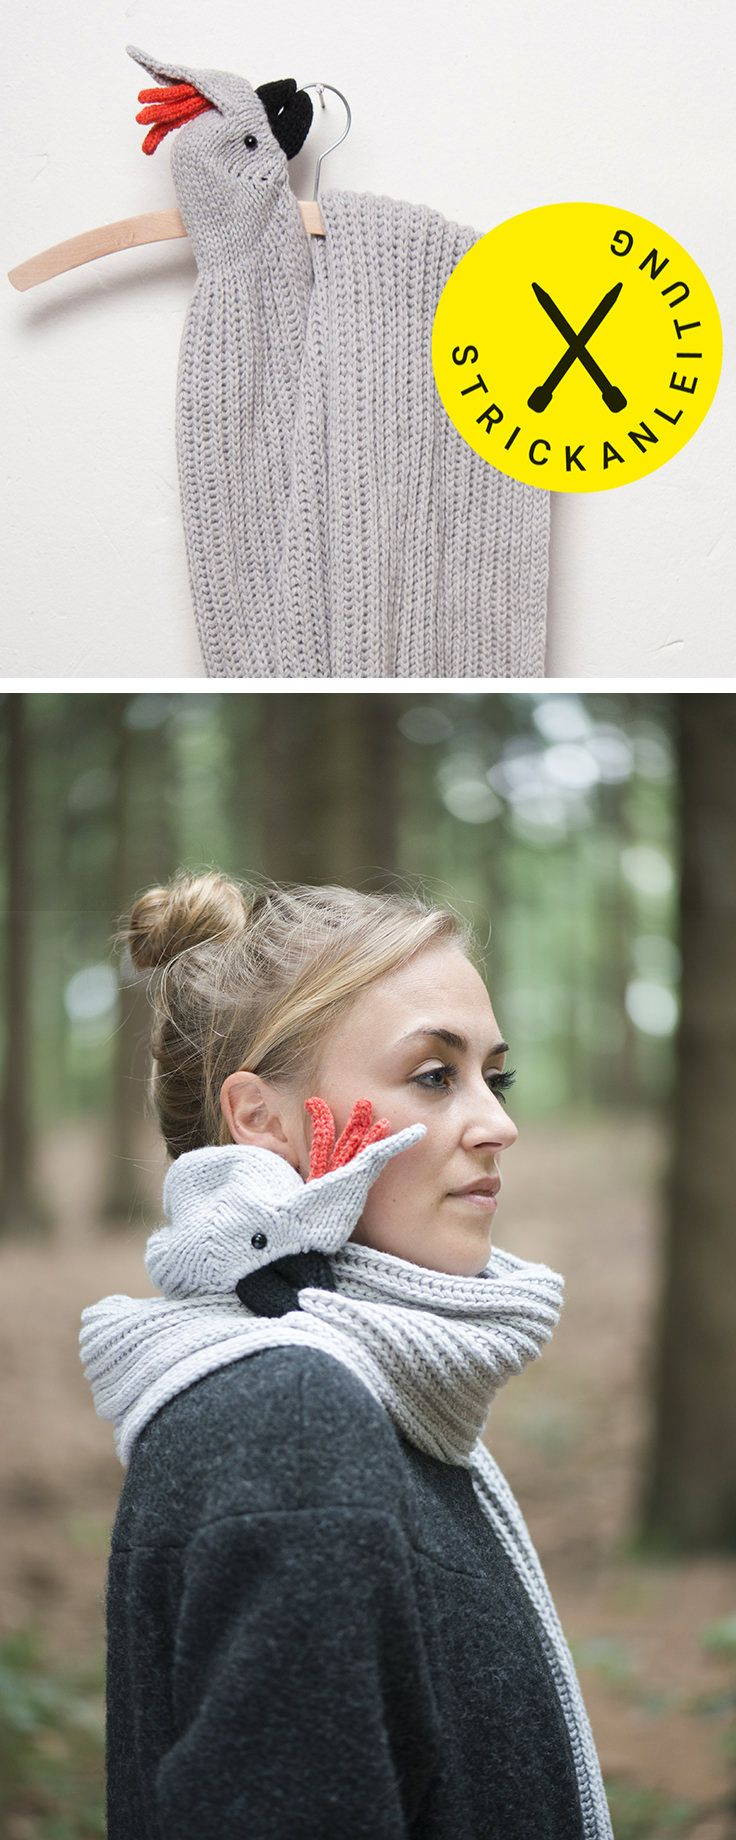 #Strickanleitung und #Strickmuster für einen Papageien Schal, originelle #Strickidee für den Winter, #Geschenkidee / handmade gift idea: #knittingpattern for a bird scarf, #knitting tutorial made by Nina Führer via DaWanda.com